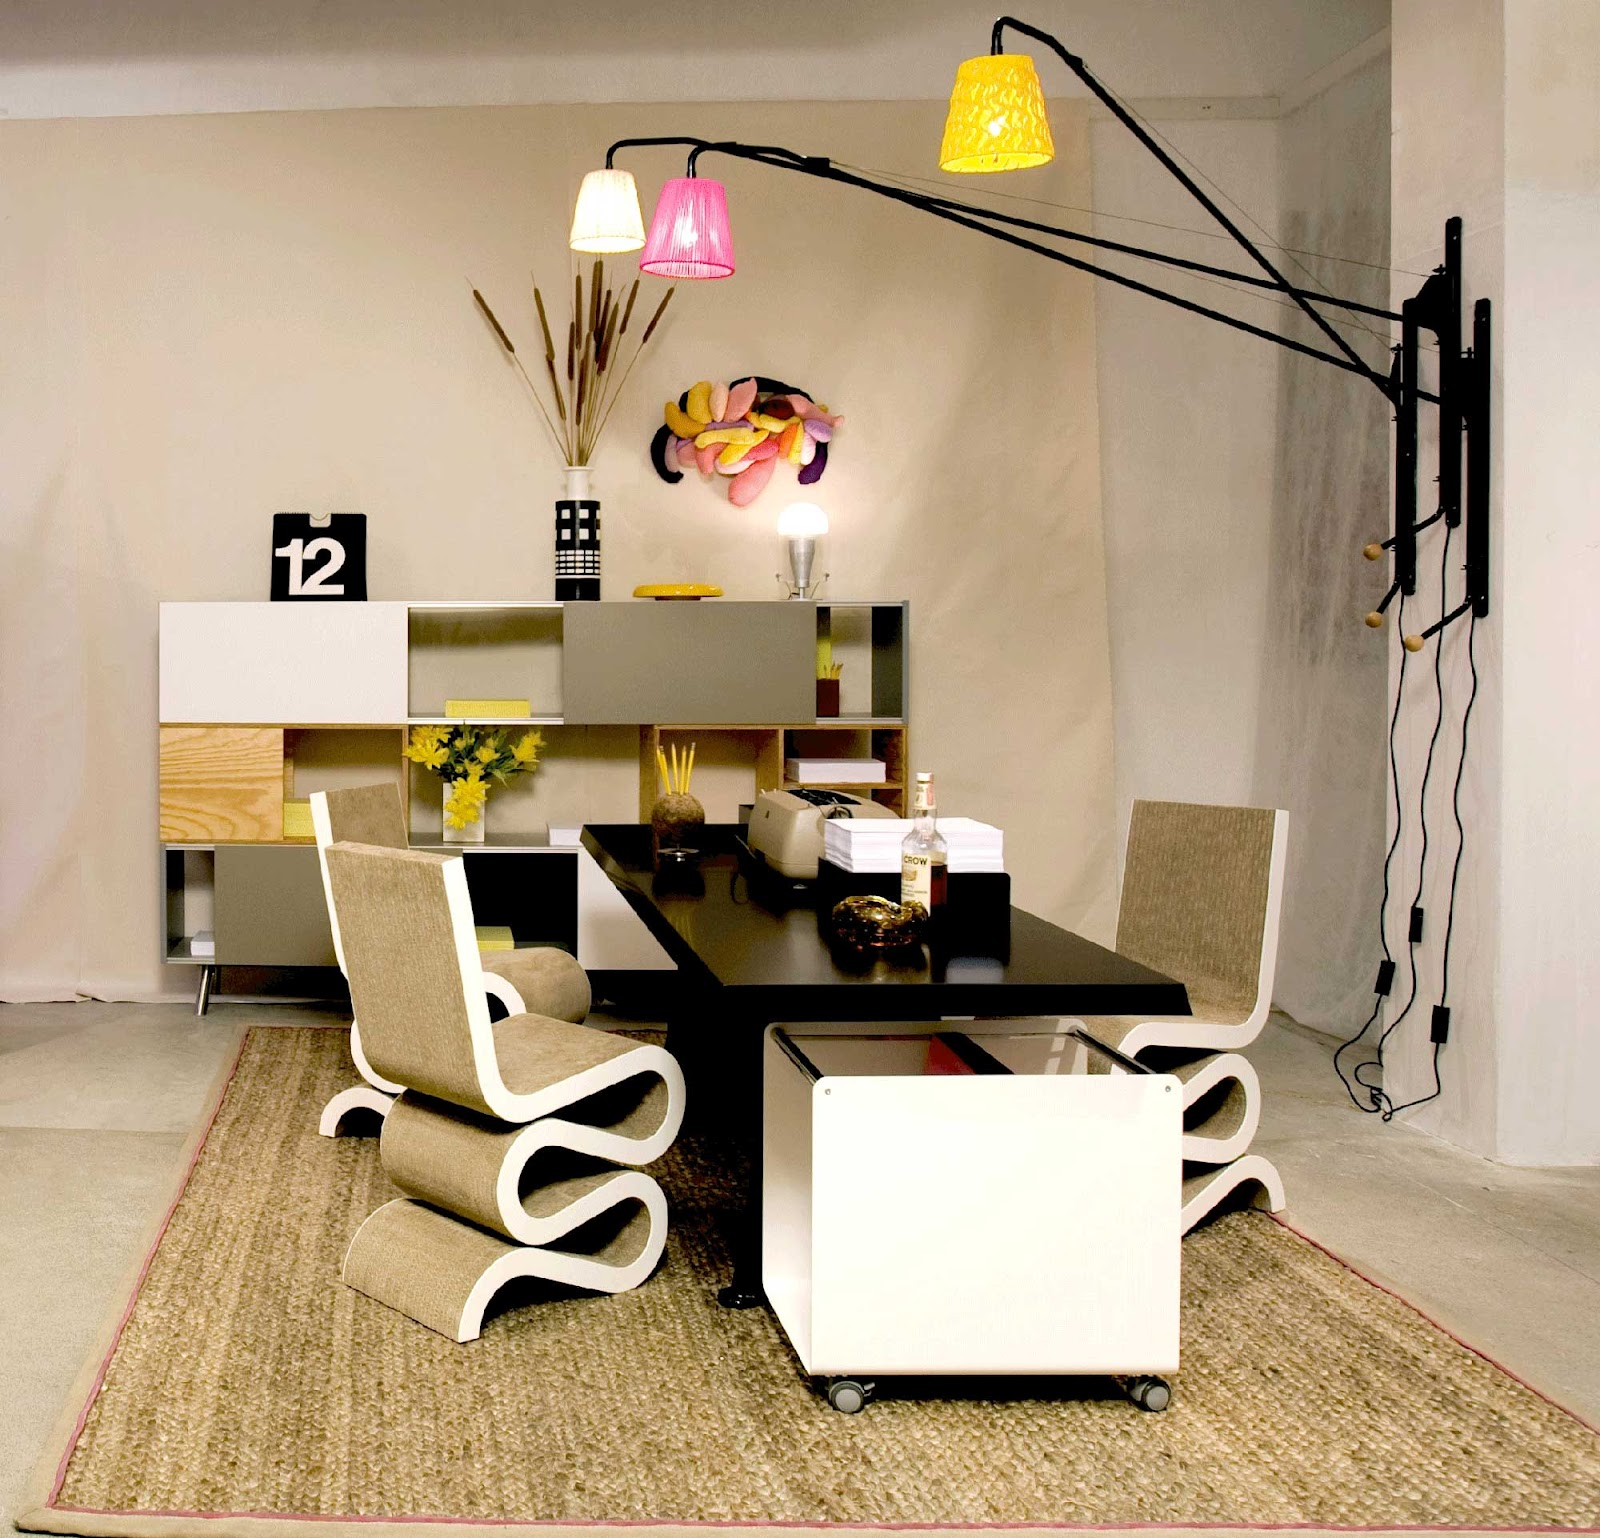 assyams info: luxury office|office furniture design|modern home